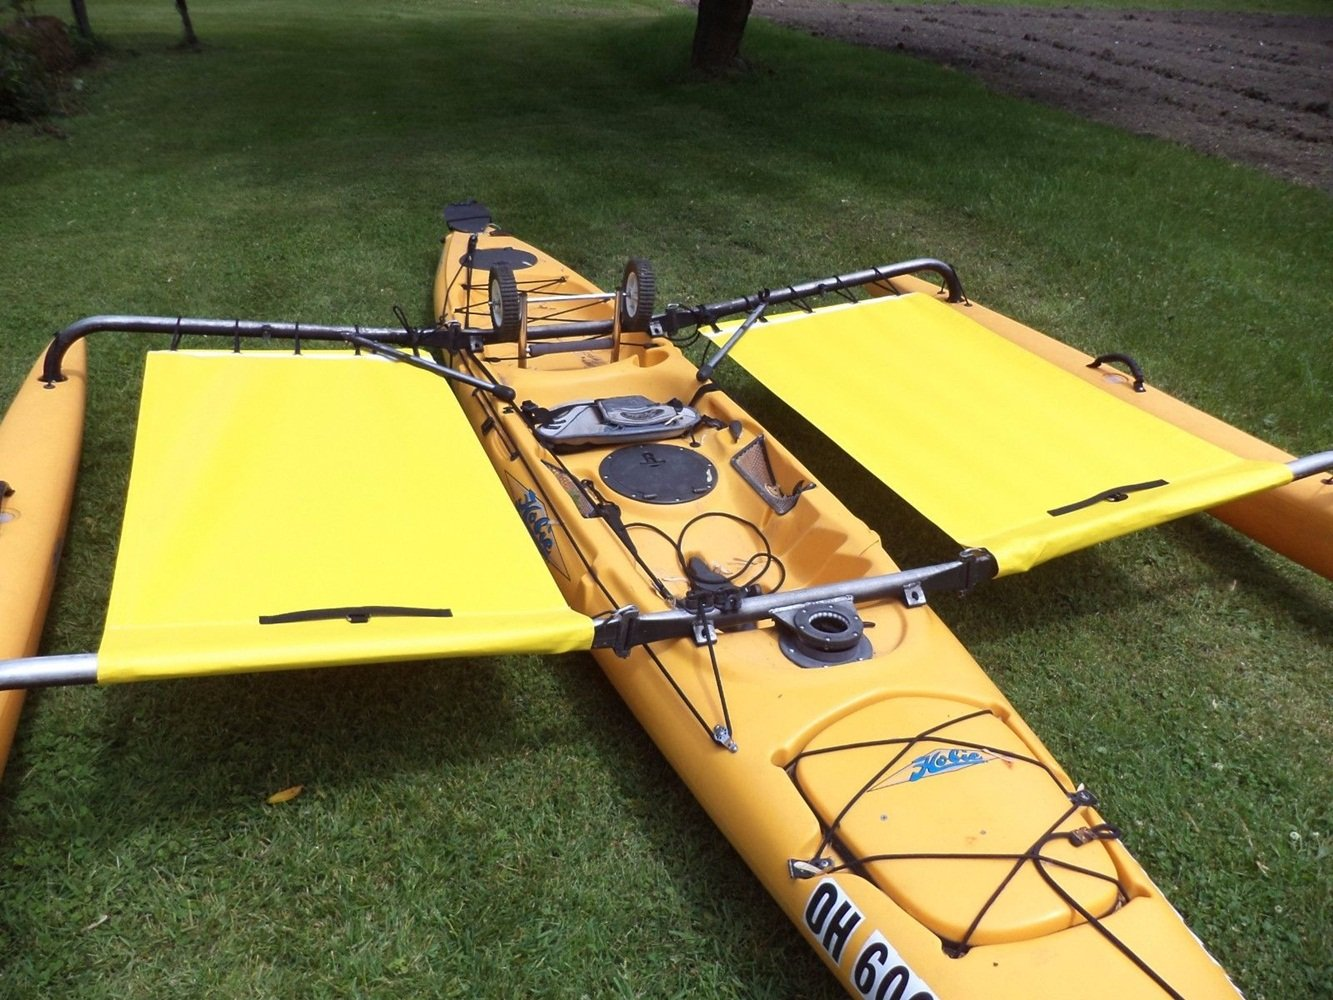 Hobie Kayak Trampoline Adventure Tandem Kayak Side yellow - front shield not incl